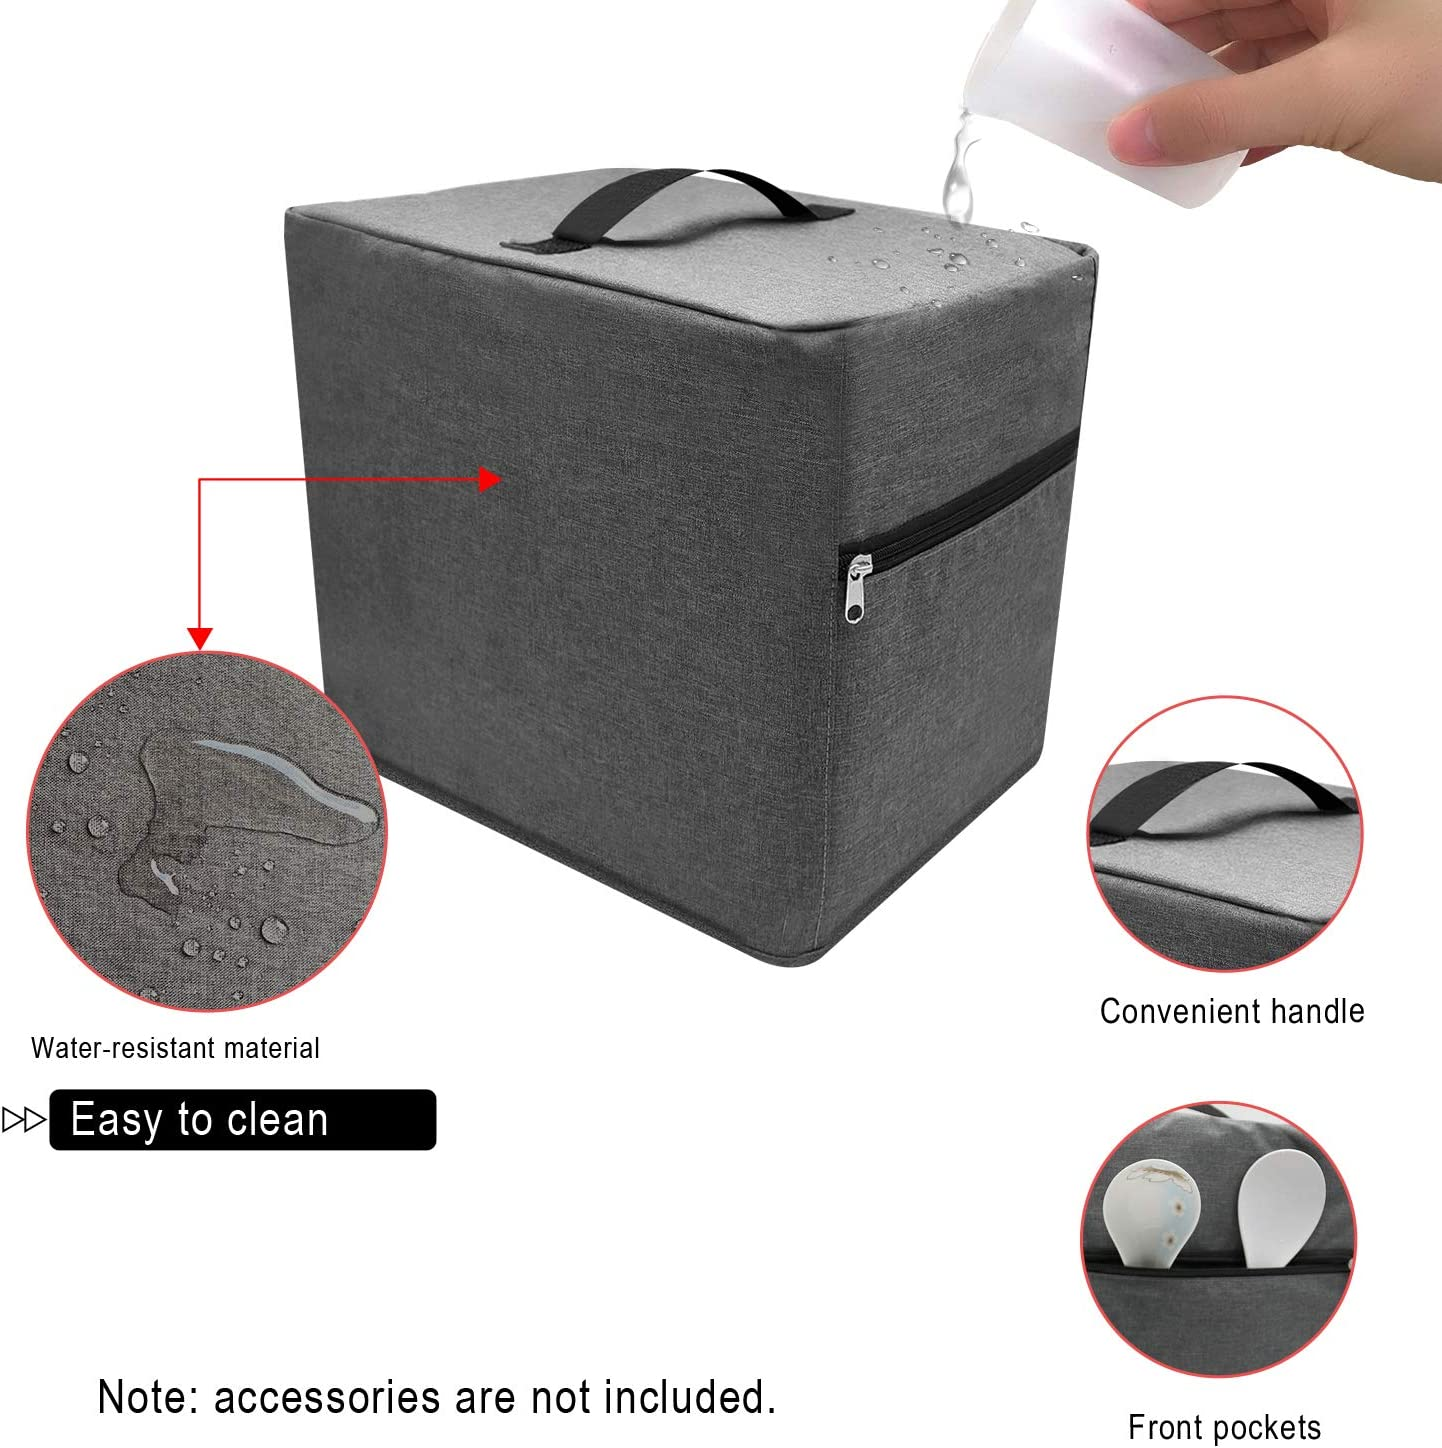 HOHUO Air Fryer Dust Cover with 2 Zippered Accessory Pocket Compatible with Philips /& Cosori Air Fryer Grey, FIT FOR 2.8-4.8 QUART AIR FRYER